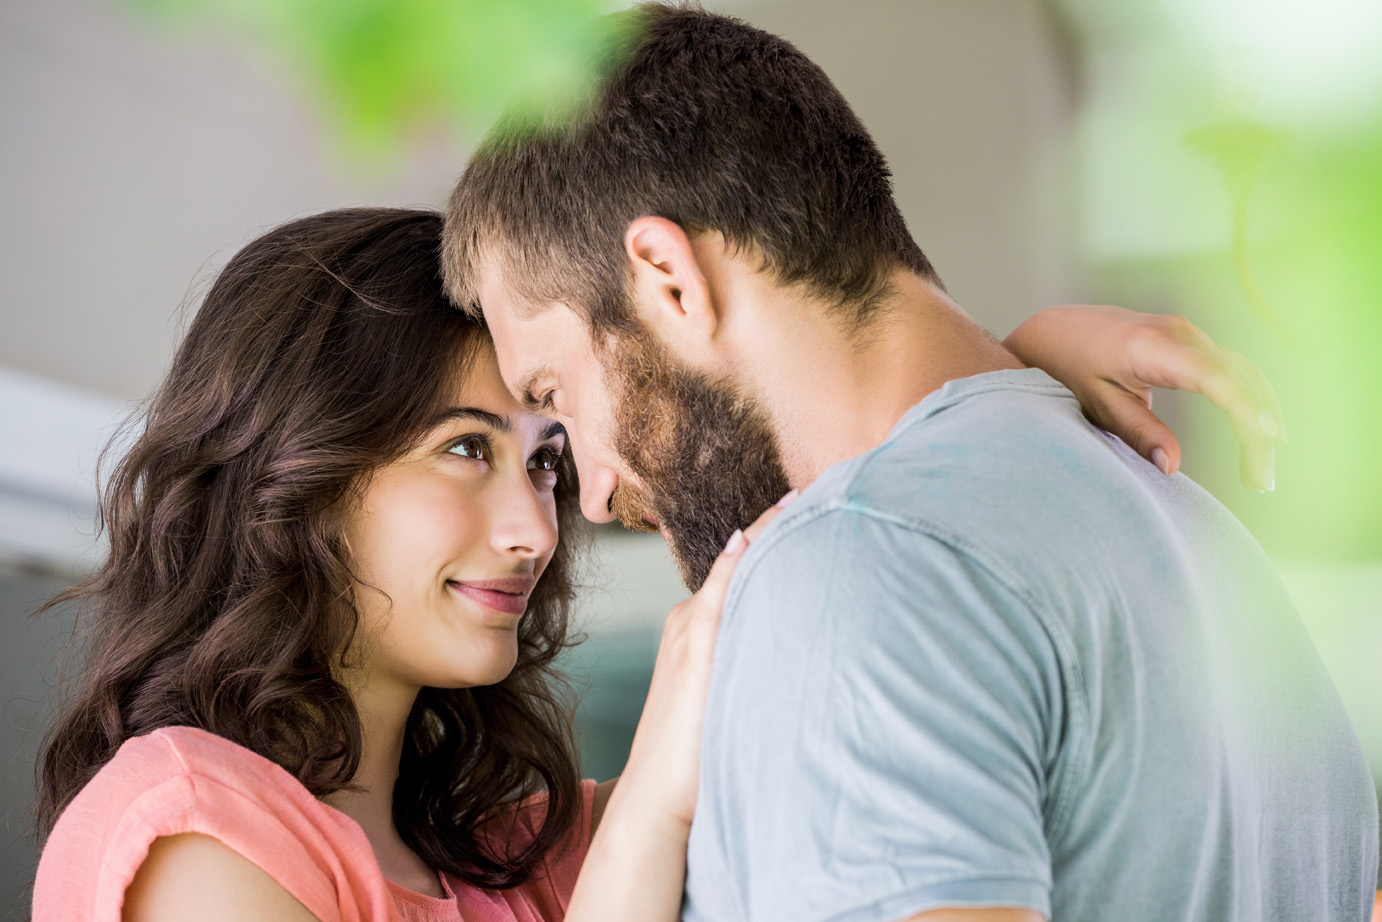 Beautiful young couple embracing each other